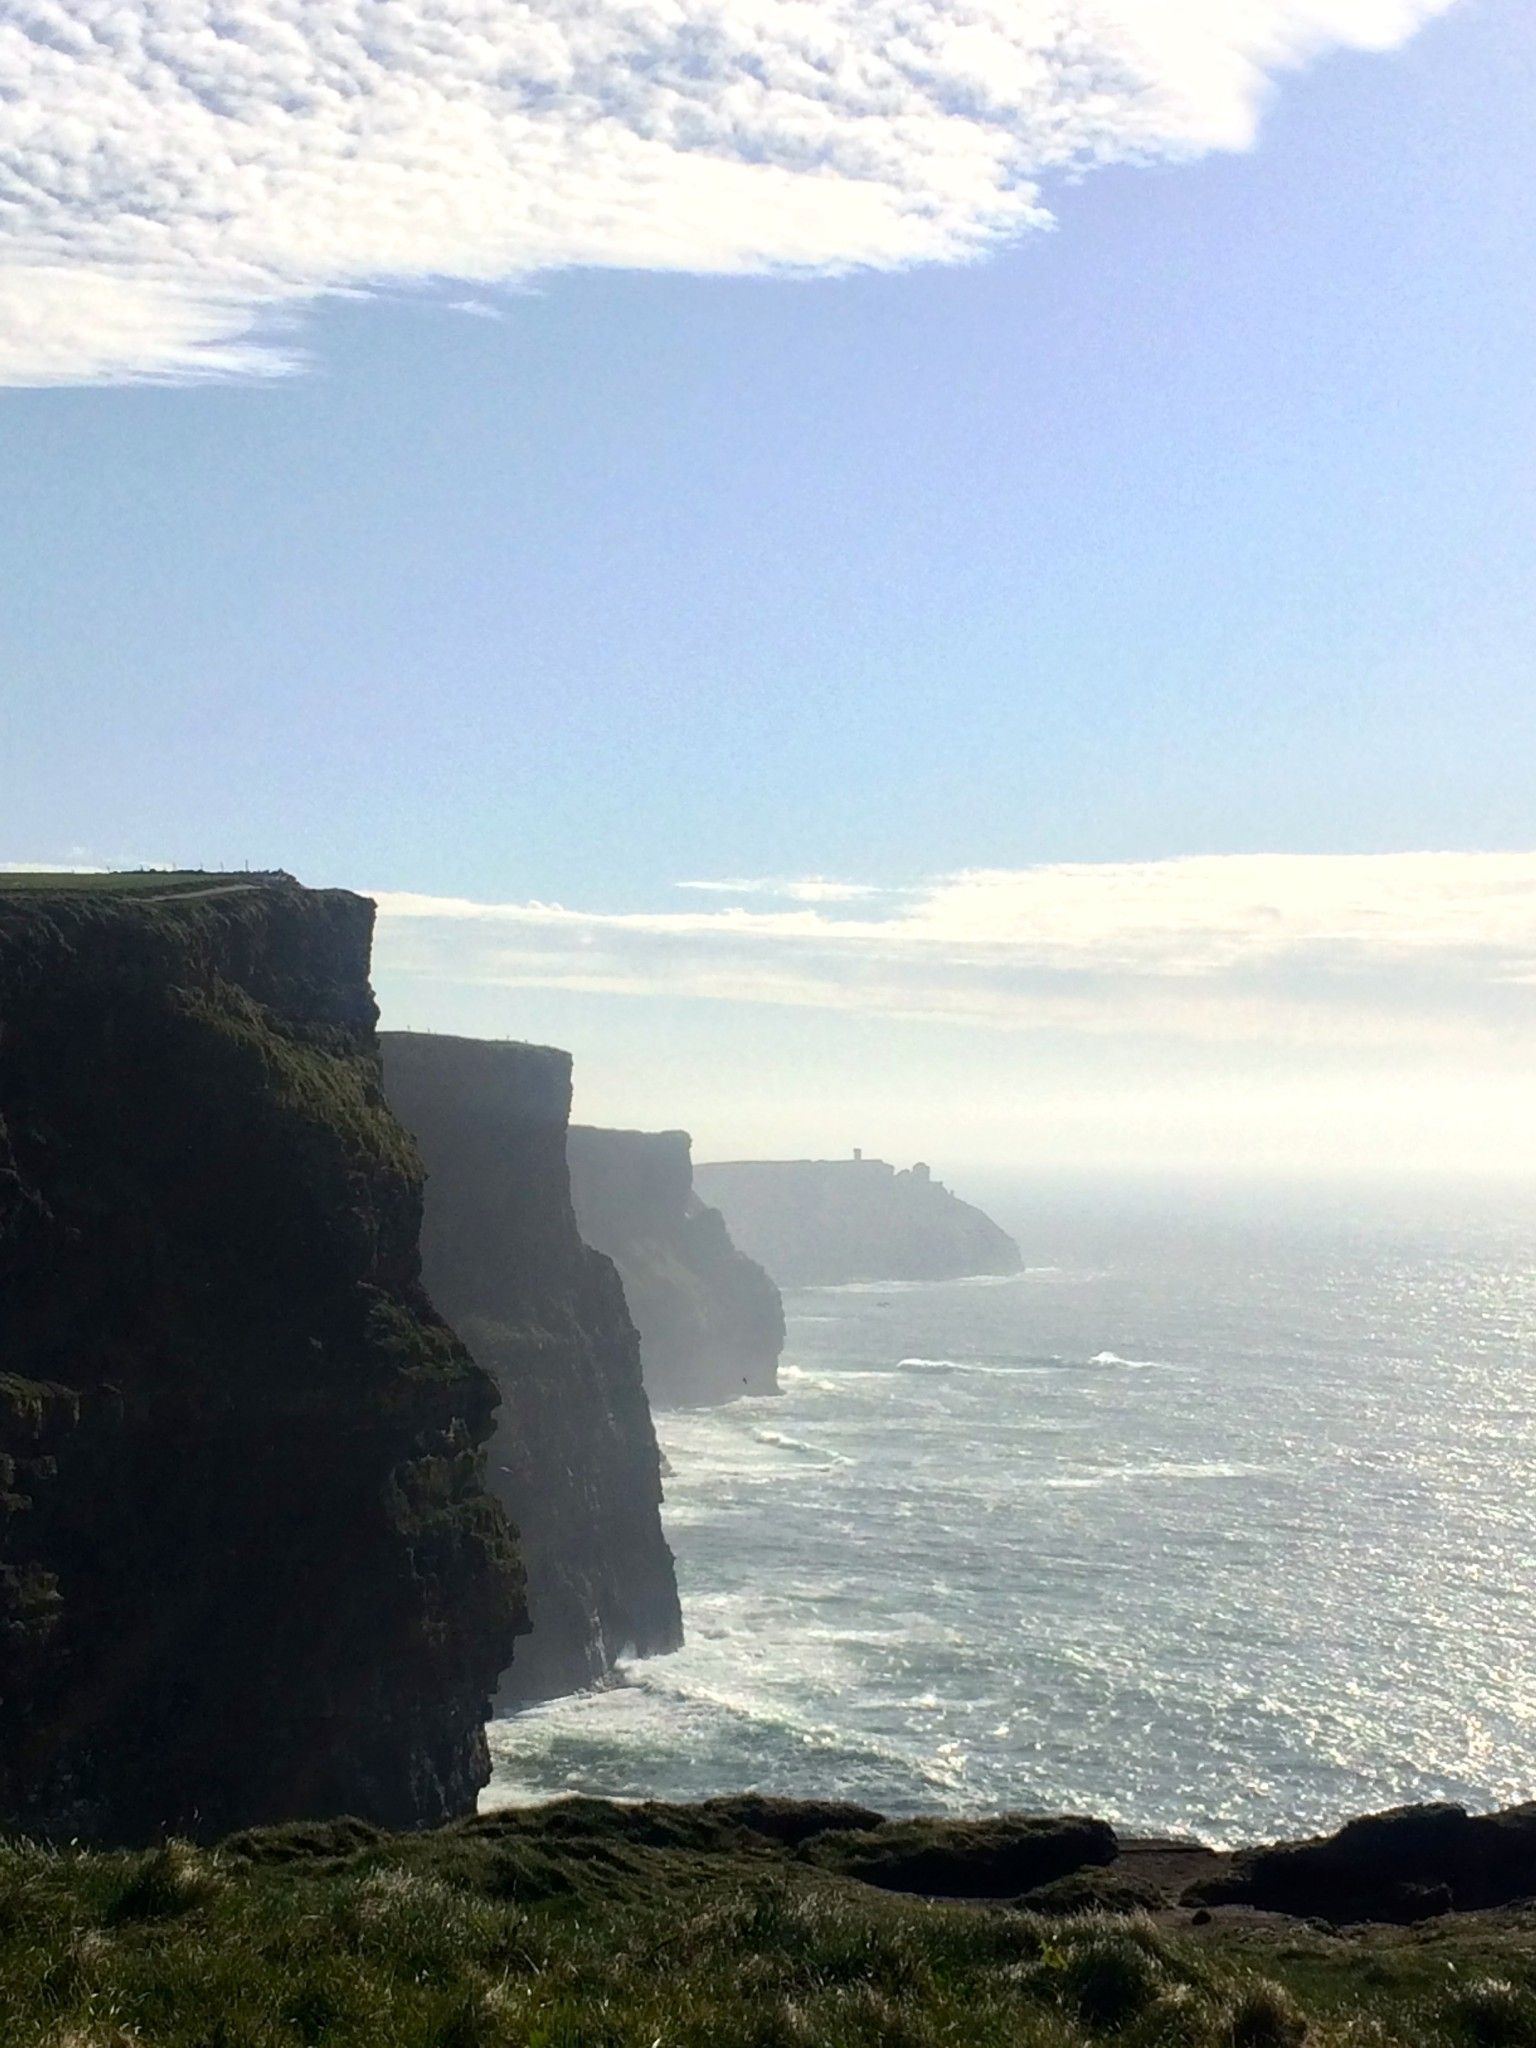 cliffosofmoher